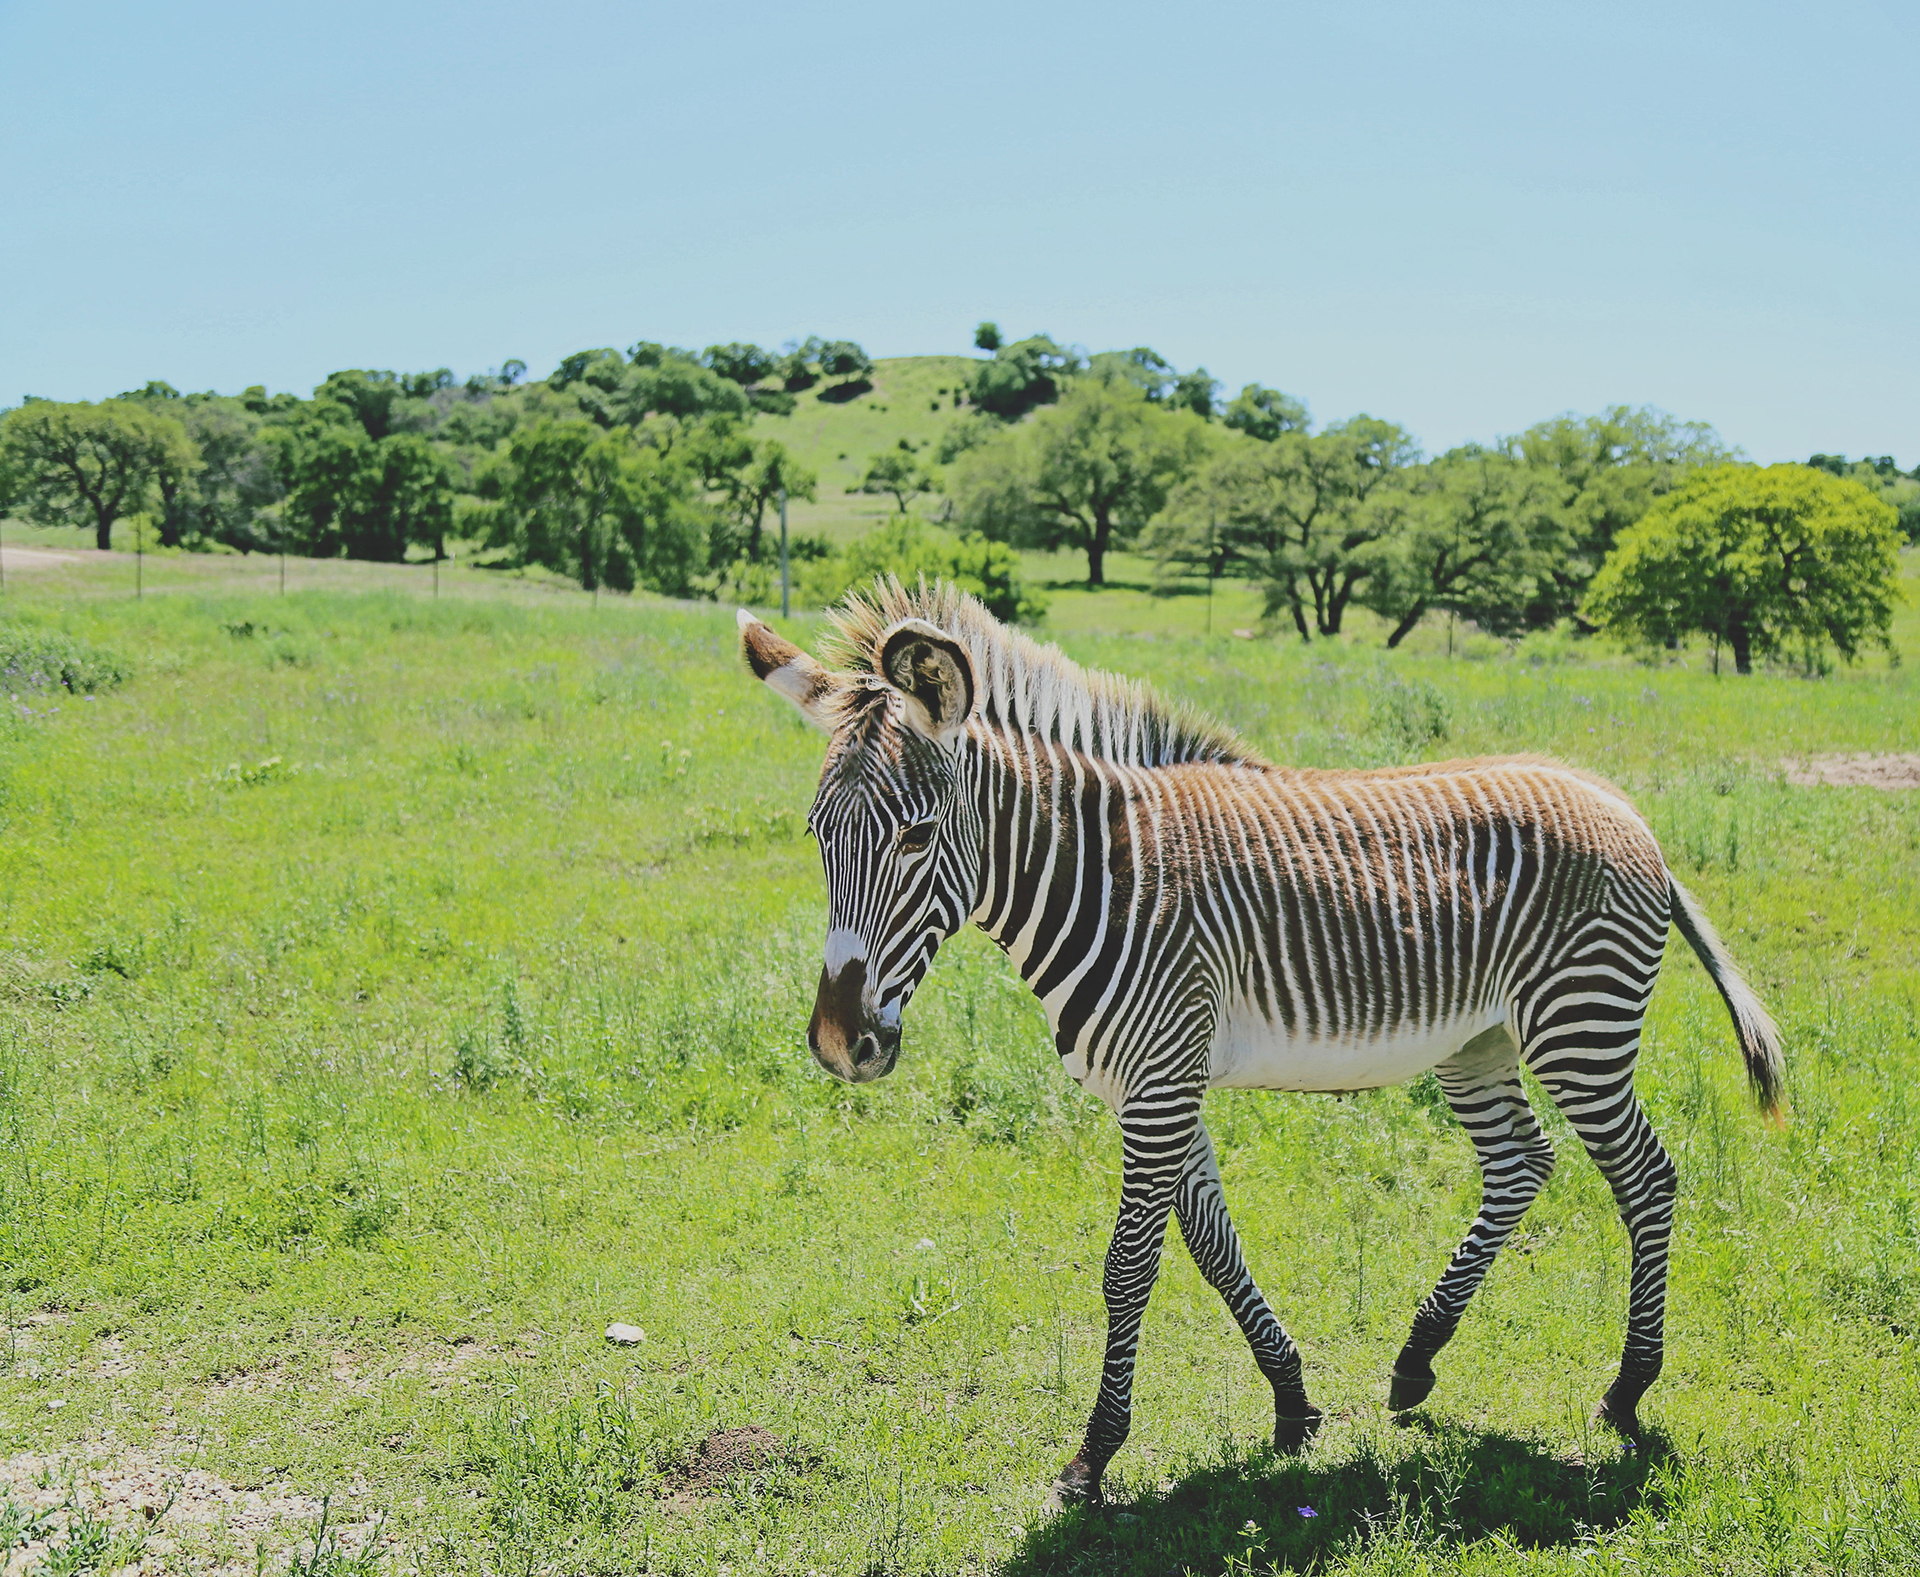 young zebra walking in grass